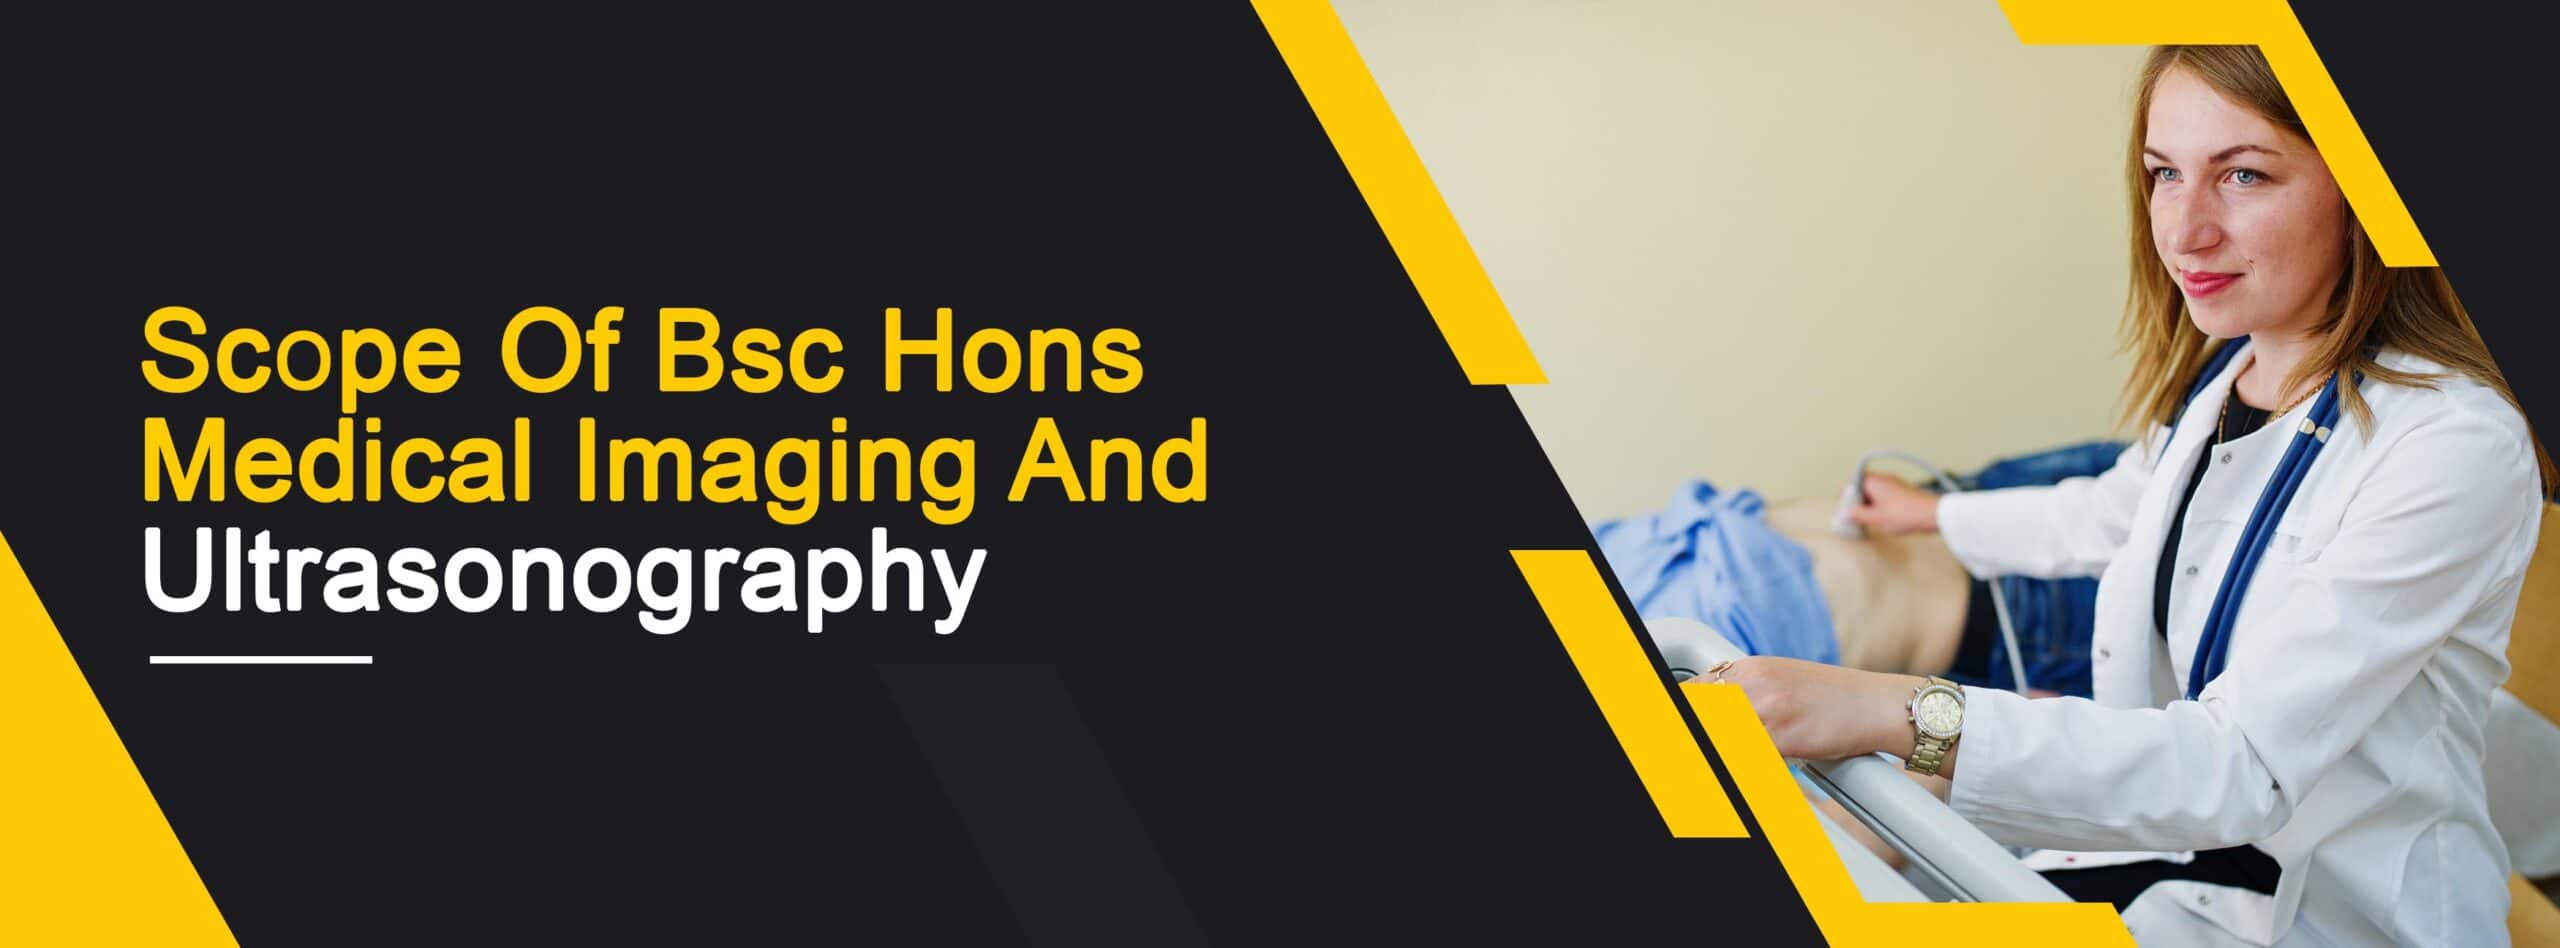 Scope Of Bsc Hons Medical Imaging And Ultrasonography 1 - Daily Medicos